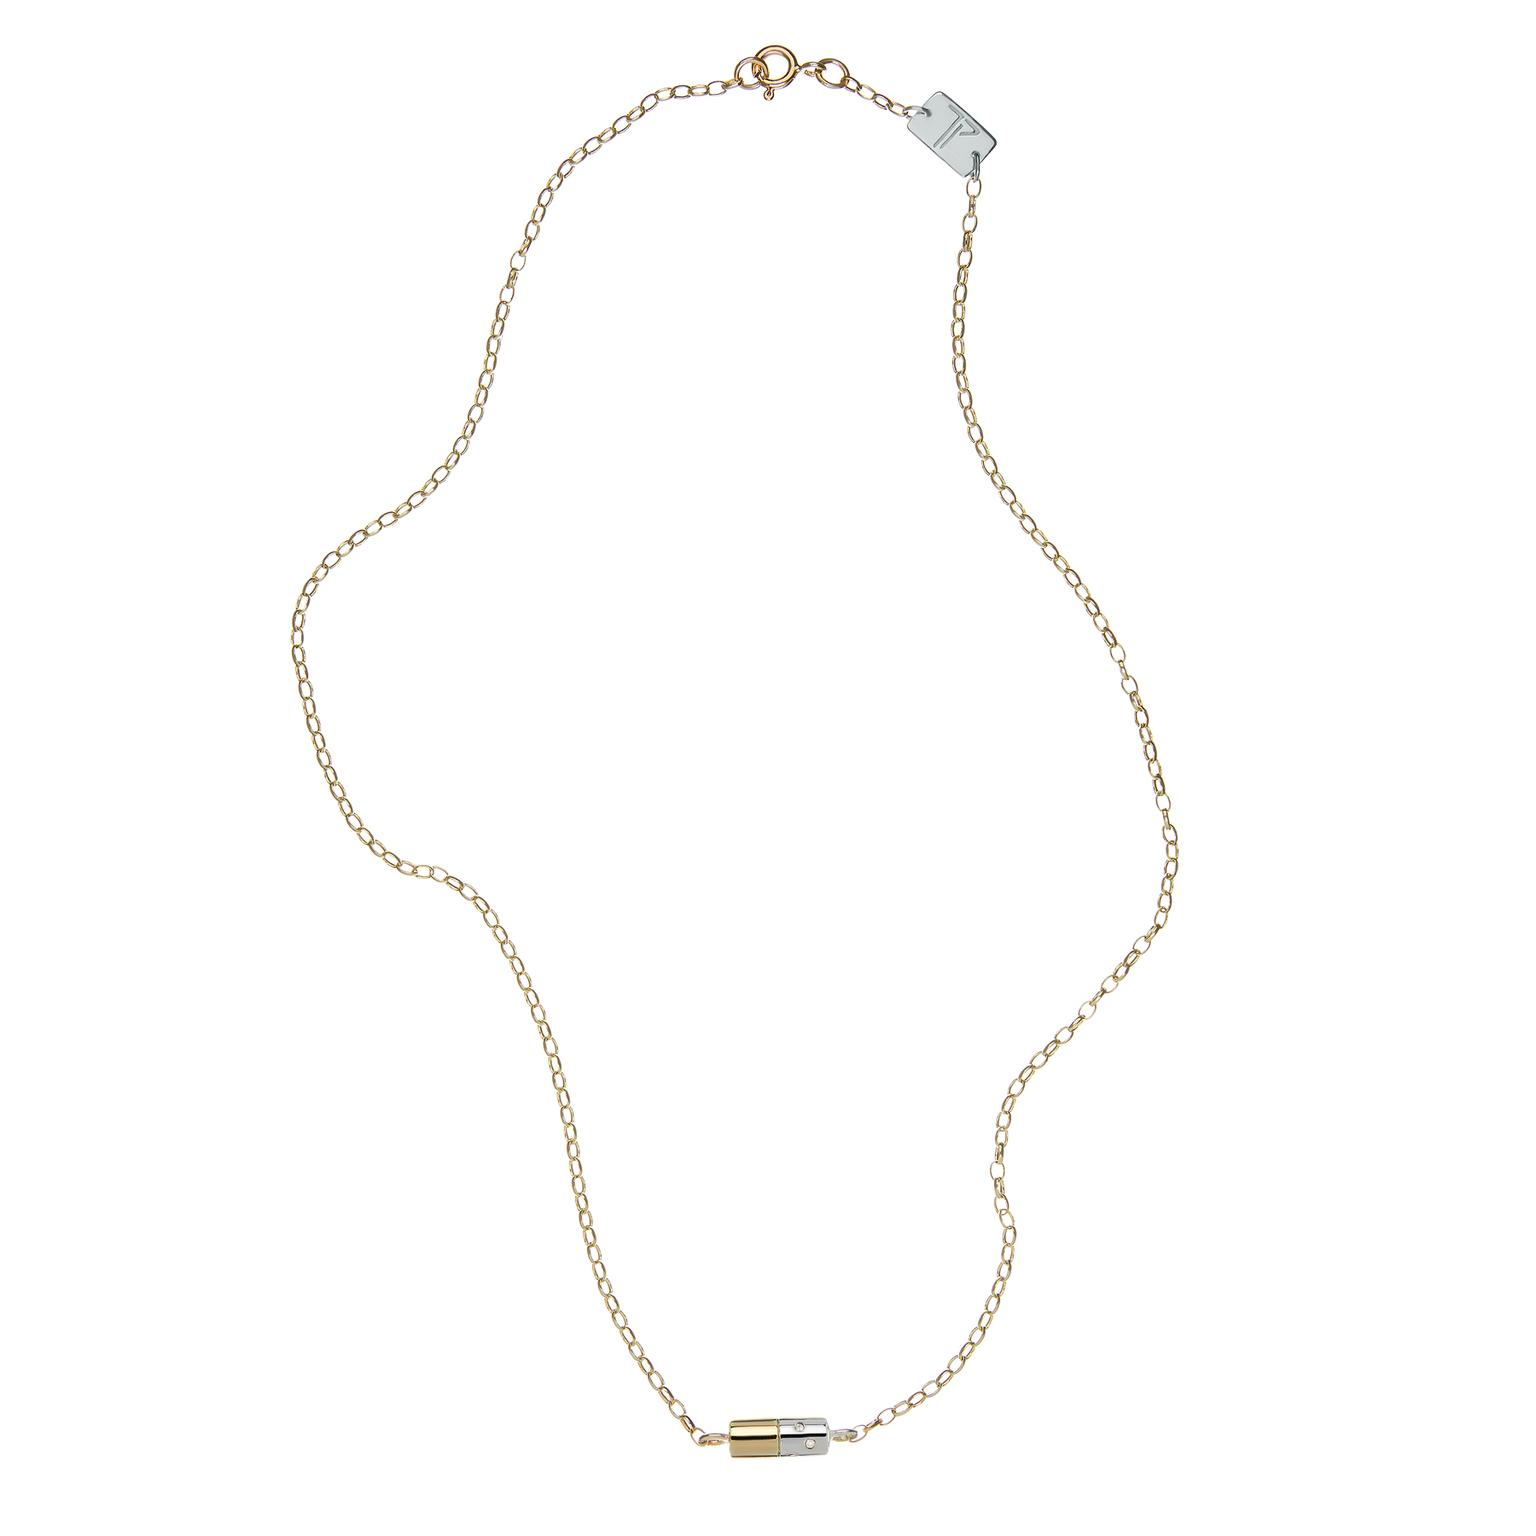 Tessa Packard Diet Pill necklace